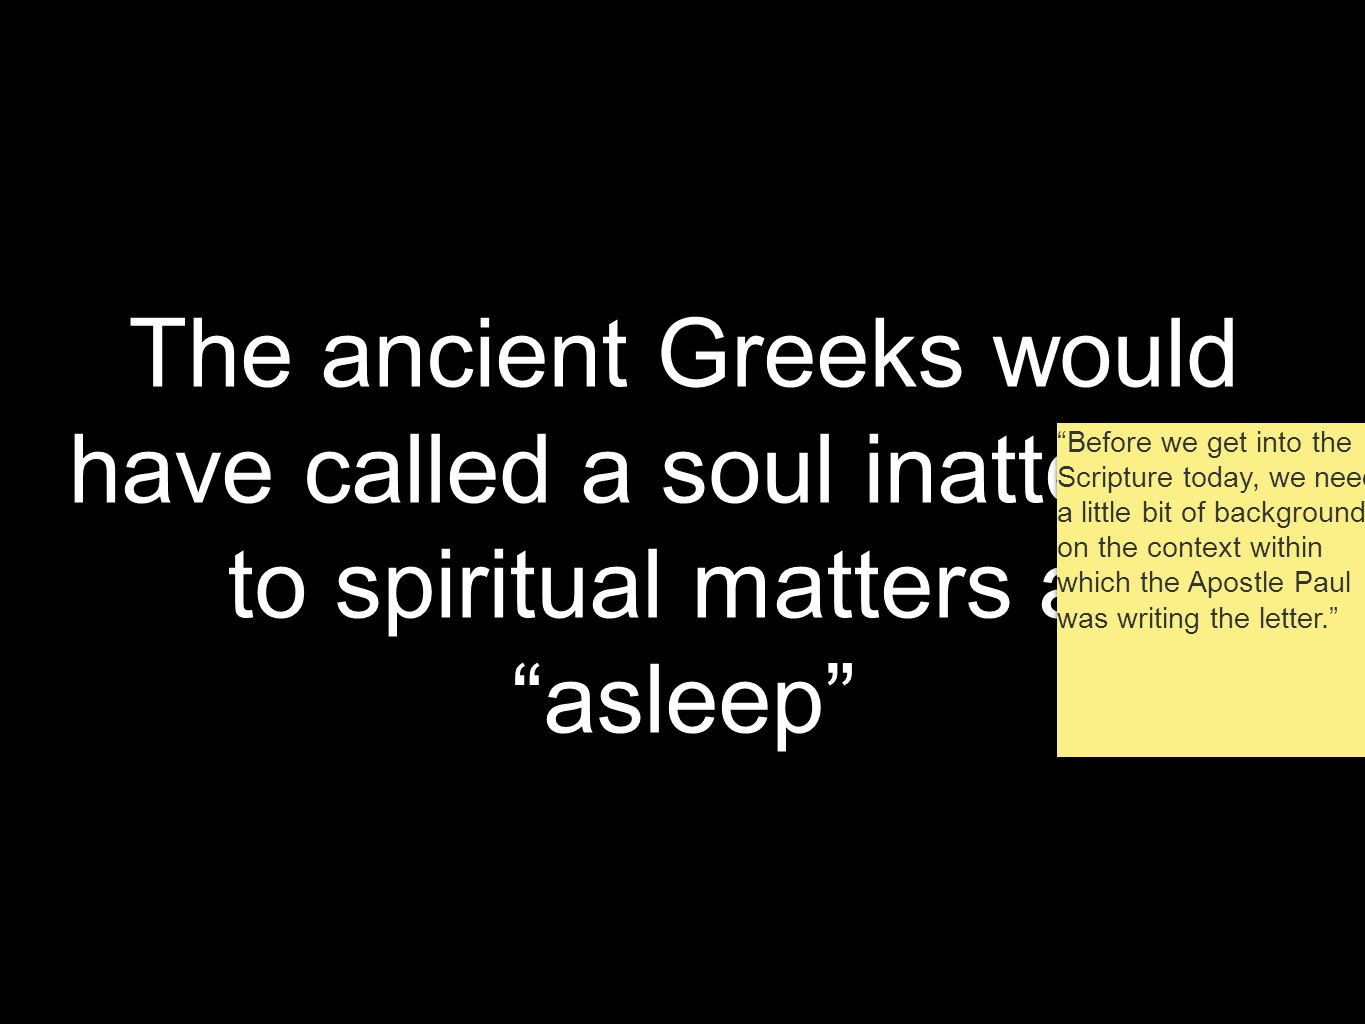 The ancient Greeks would have called a soul inattentive to spiritual matters as asleep Before we get into the Scripture today, we need a little bit of background on the context within which the Apostle Paul was writing the letter.